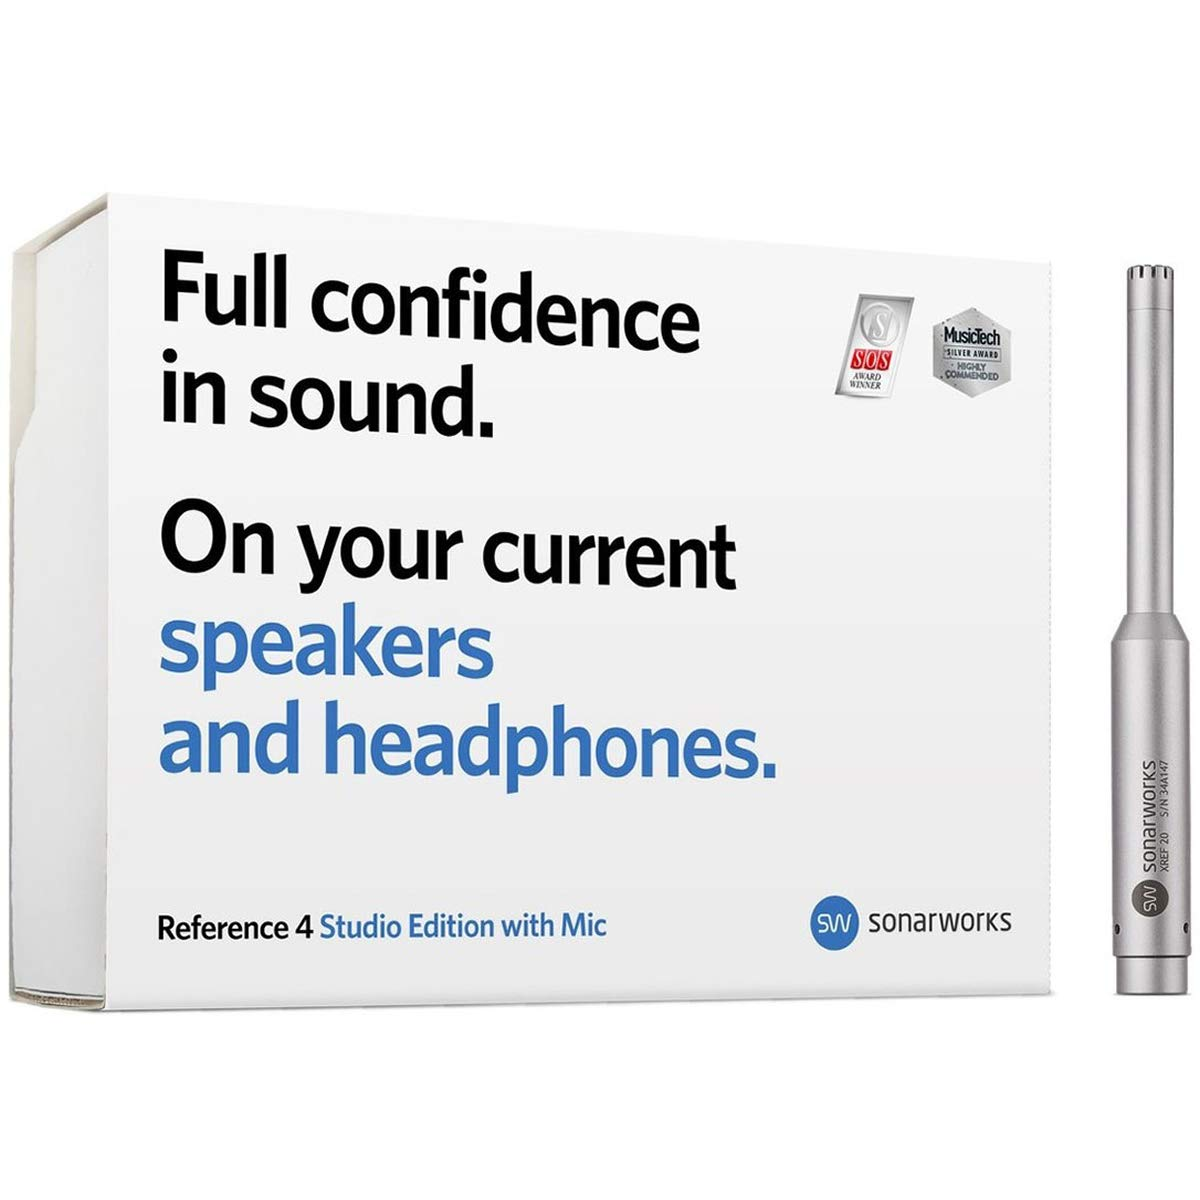 SONARWORKS Reference 4 Studio Edition Speaker, Monitor, and Headphone Calibration Software with Measurement Microphone